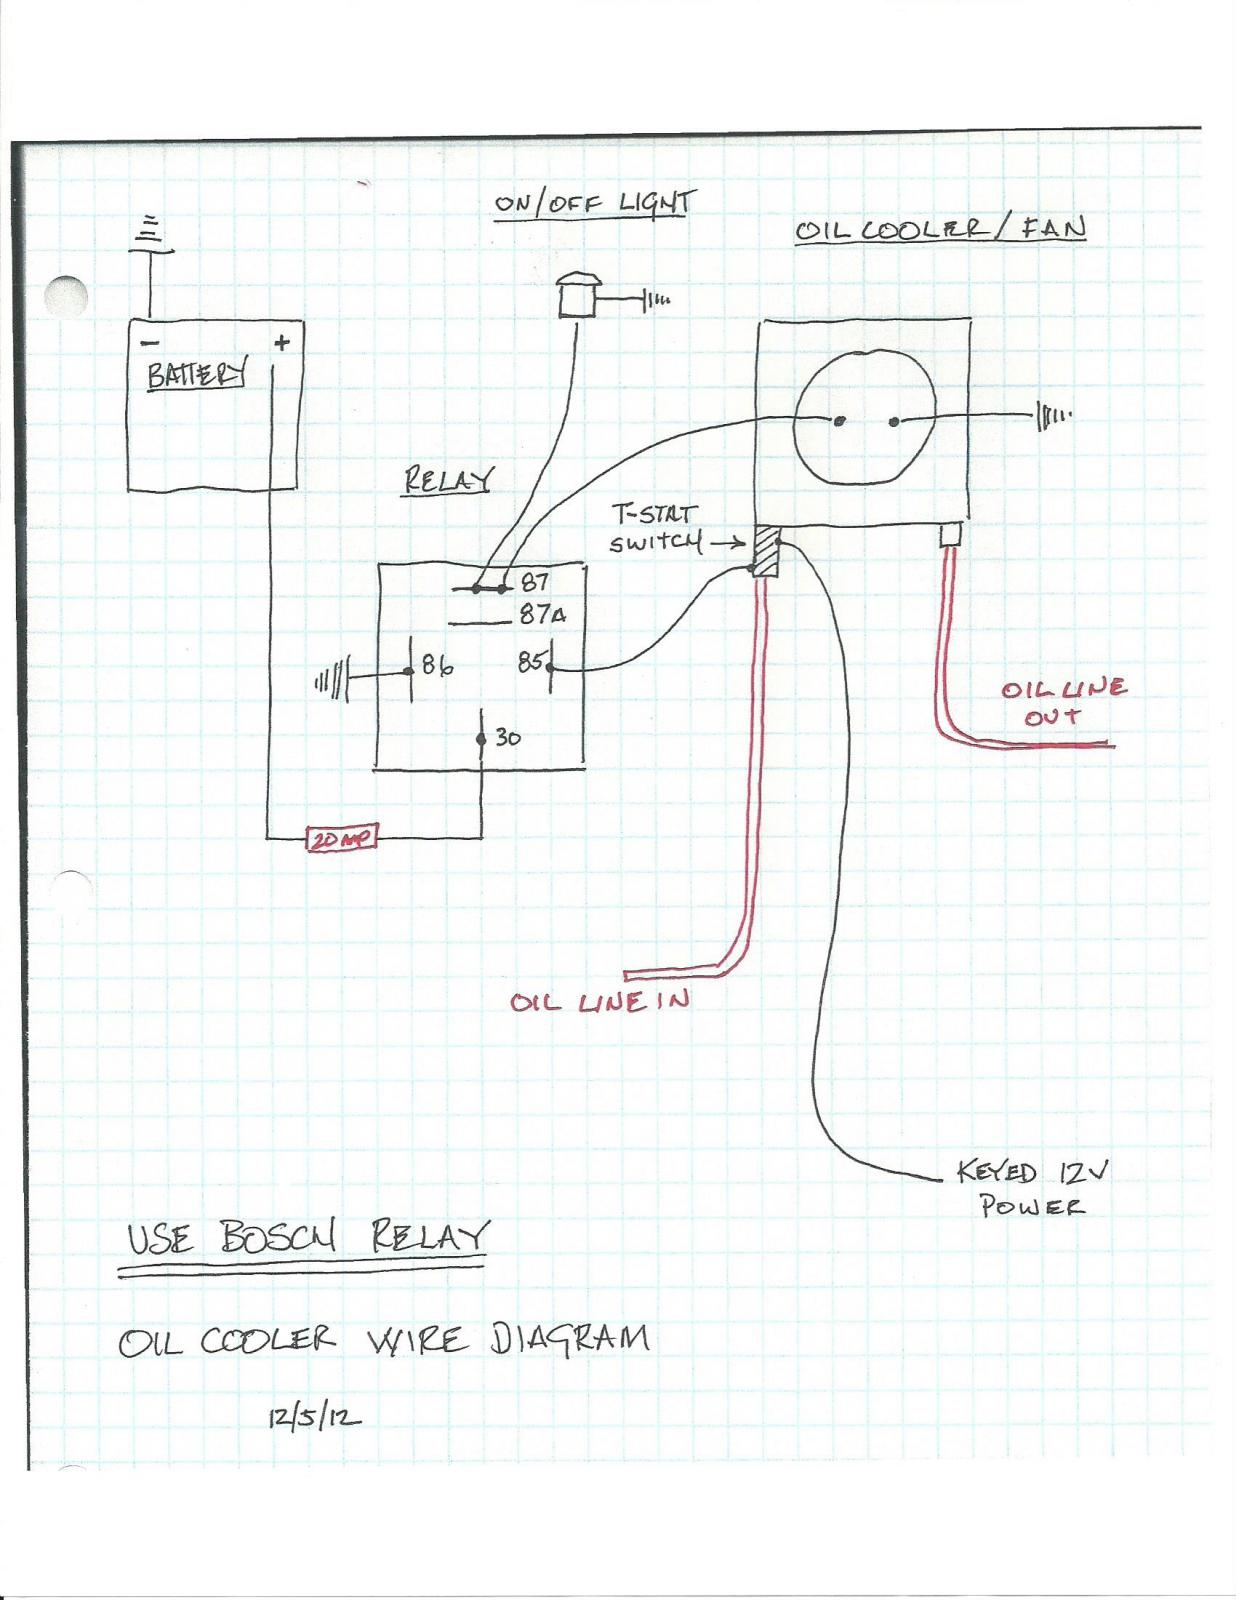 [SCHEMATICS_4FD]  TheSamba.com :: Performance/Engines/Transmissions - View topic - Location  of inline Oil Temp Fan Switch | Derale Oil Cooler Wiring Diagram |  | The Samba